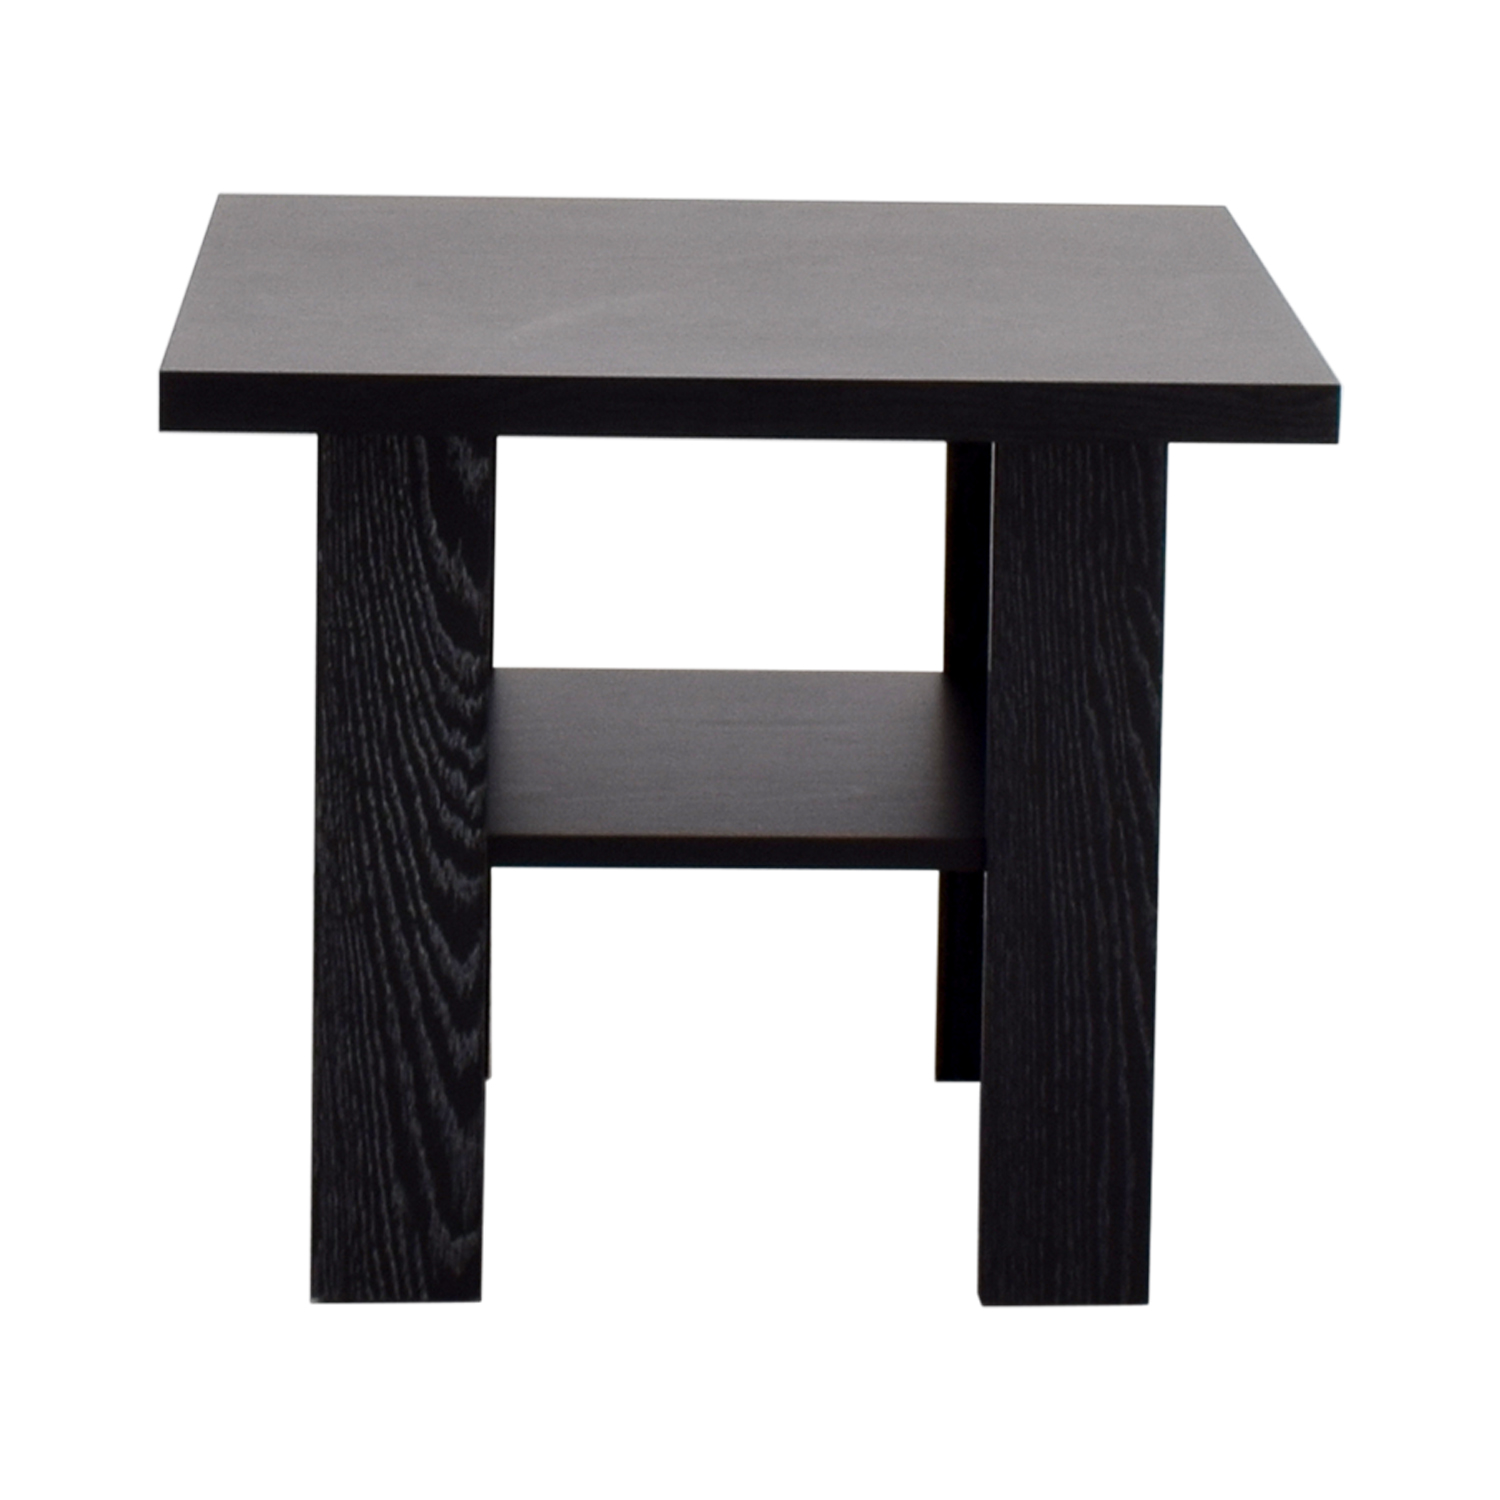 Black Square Side Table with Shelf second hand